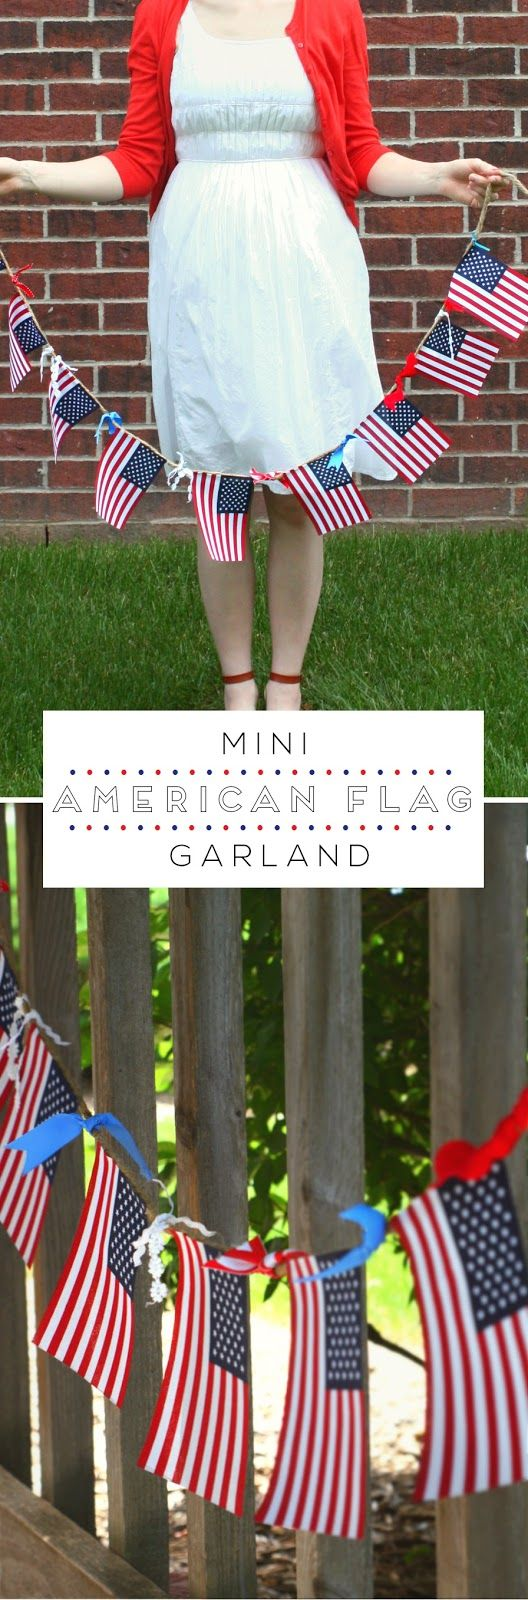 Mini American Flag garland - Fourth of July decorations